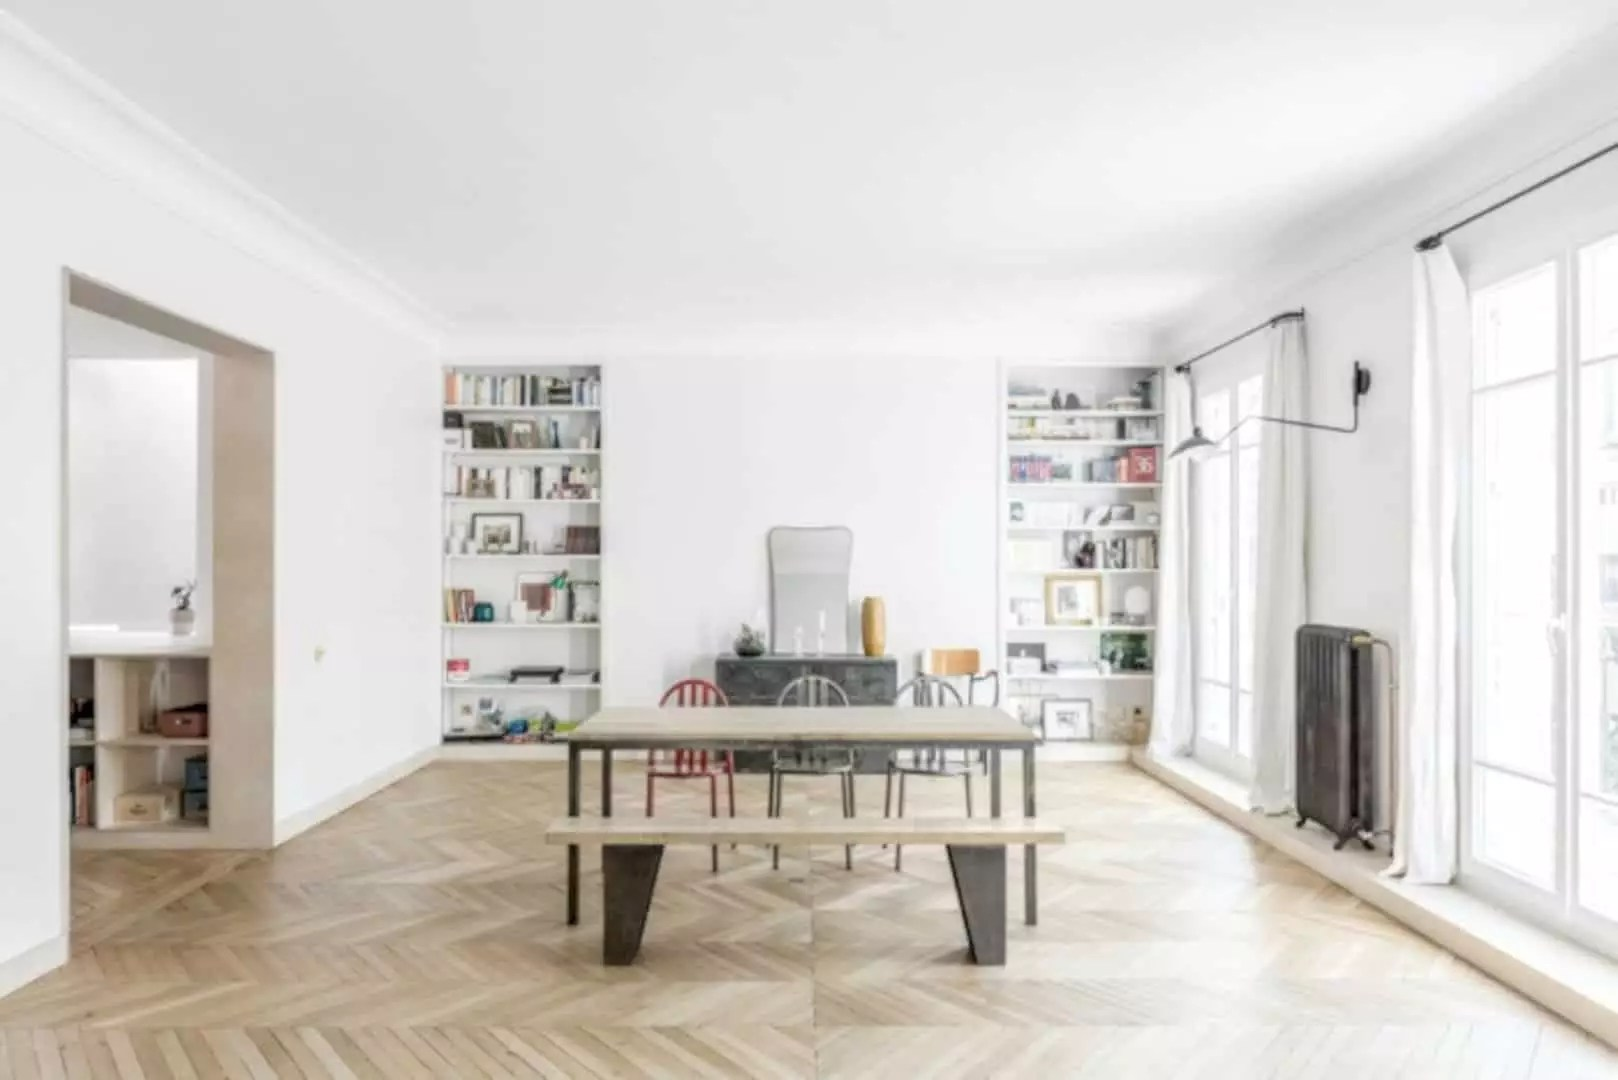 Modern Interieur Warm : Legrand new apartment structure with warm and modern interior